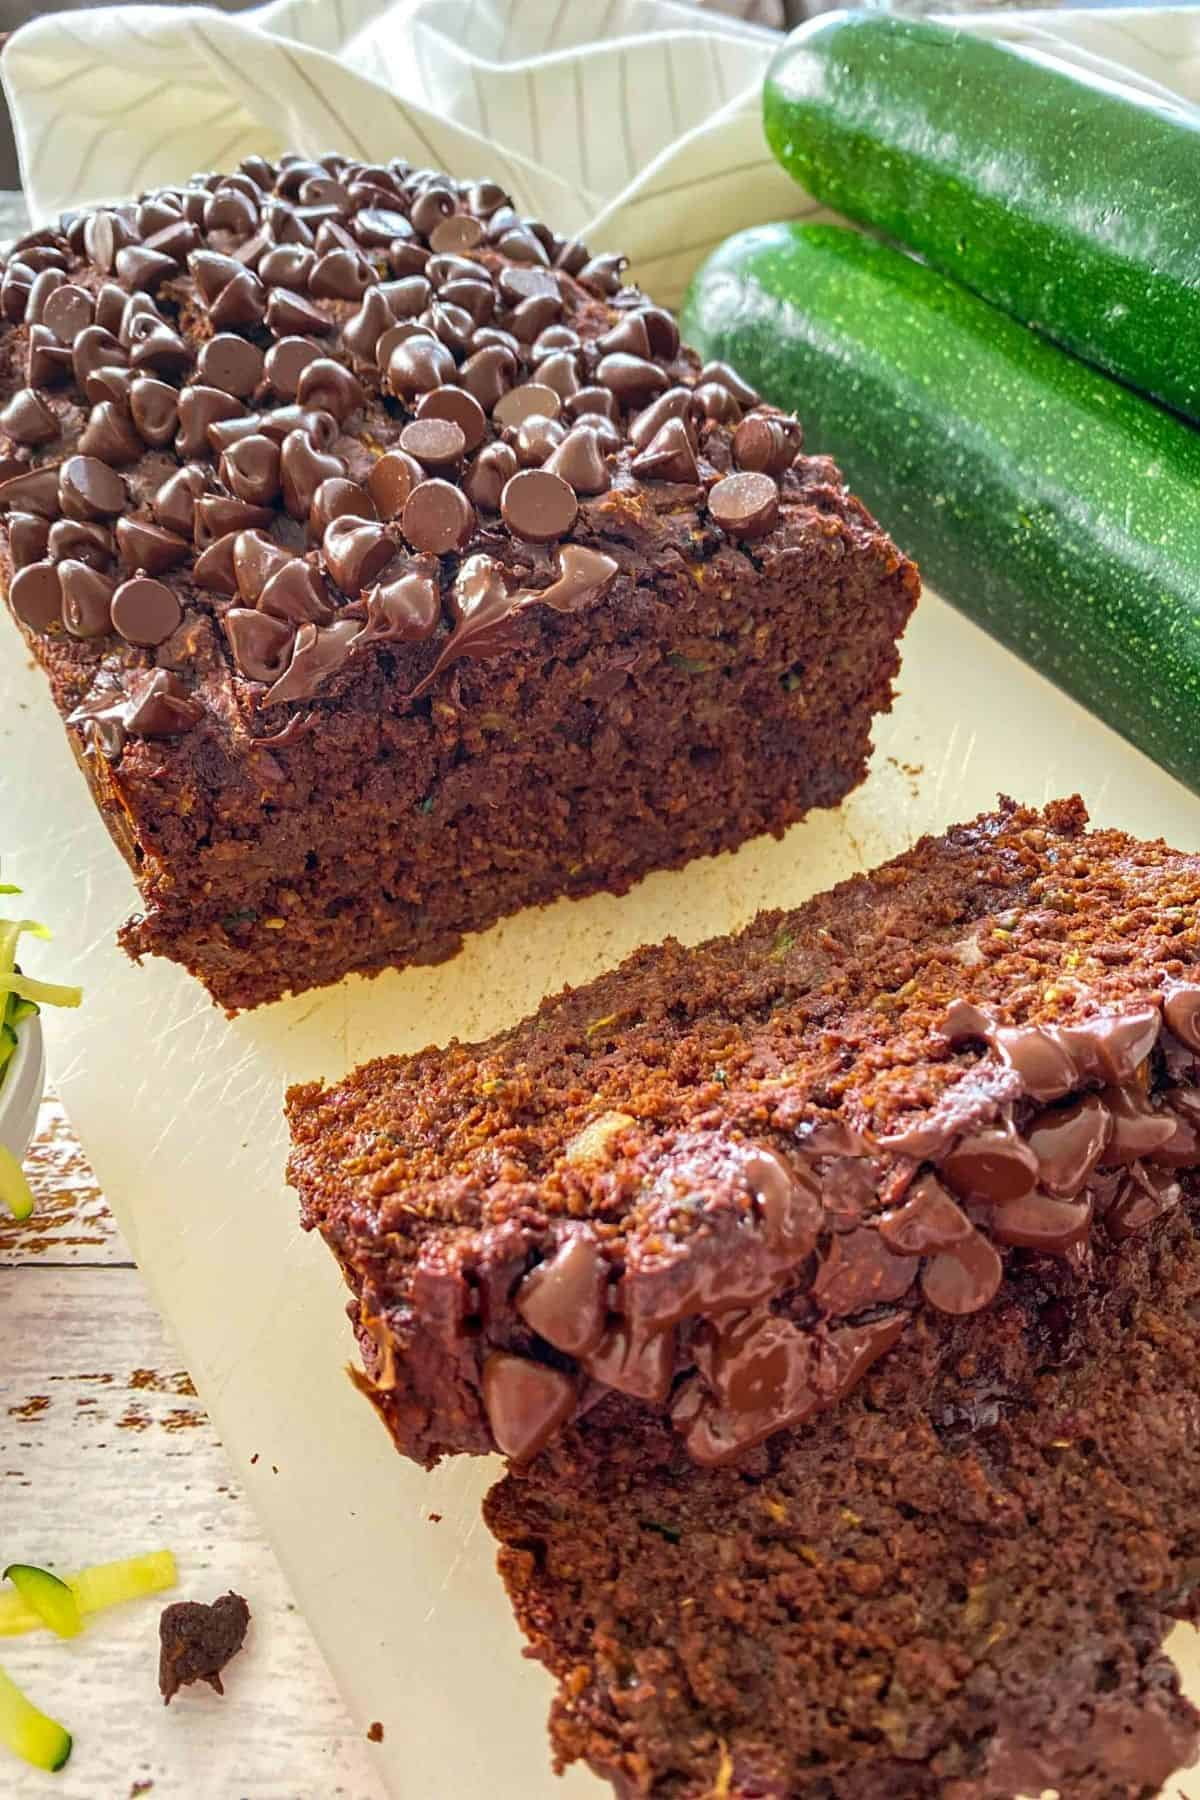 Loaf of chocolate zucchini bread on cutting board with two slices in front on their side.